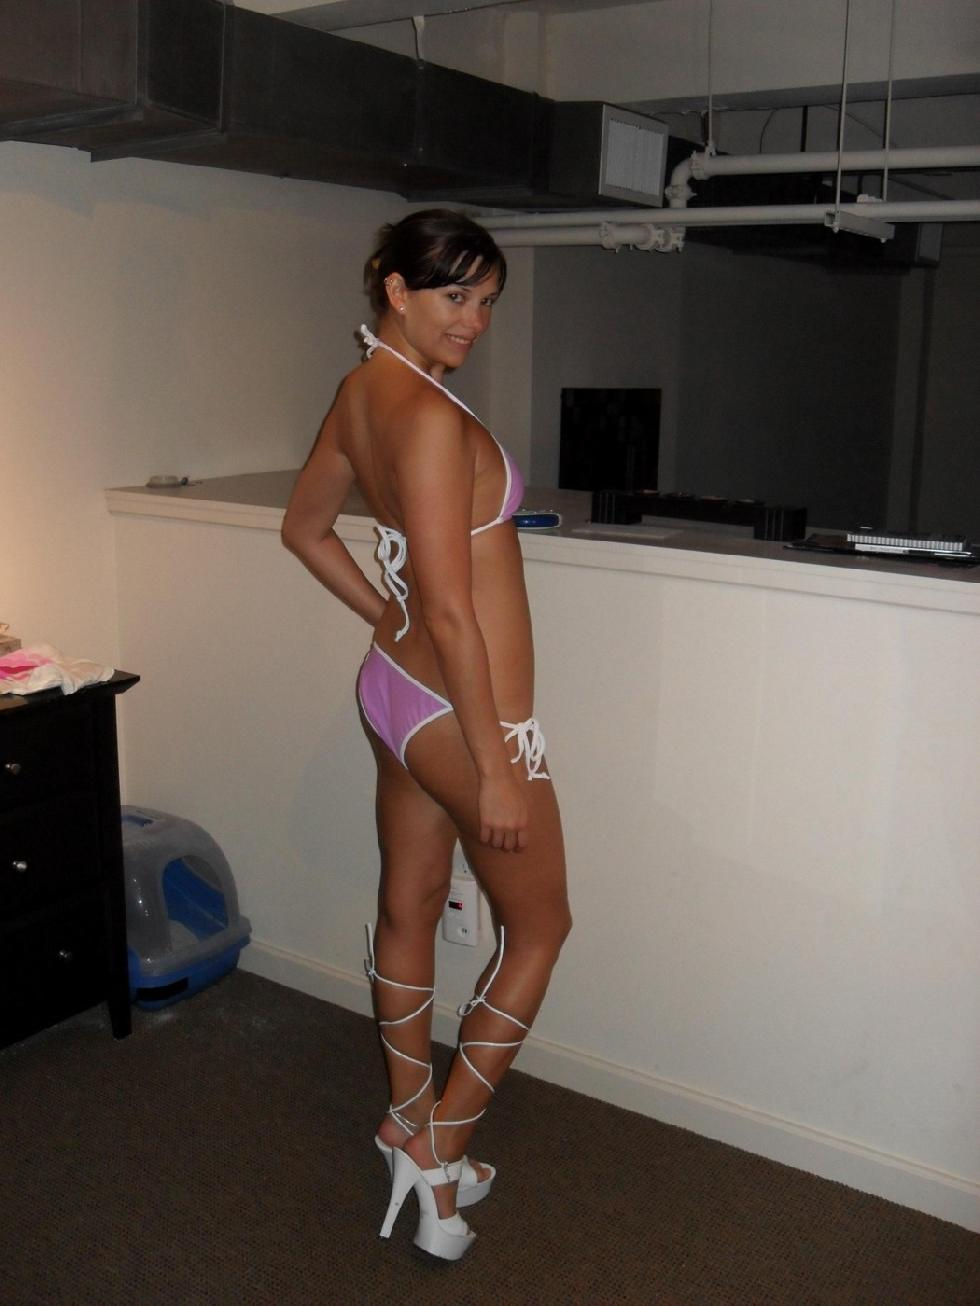 Second time in hotel - Melanie - 1